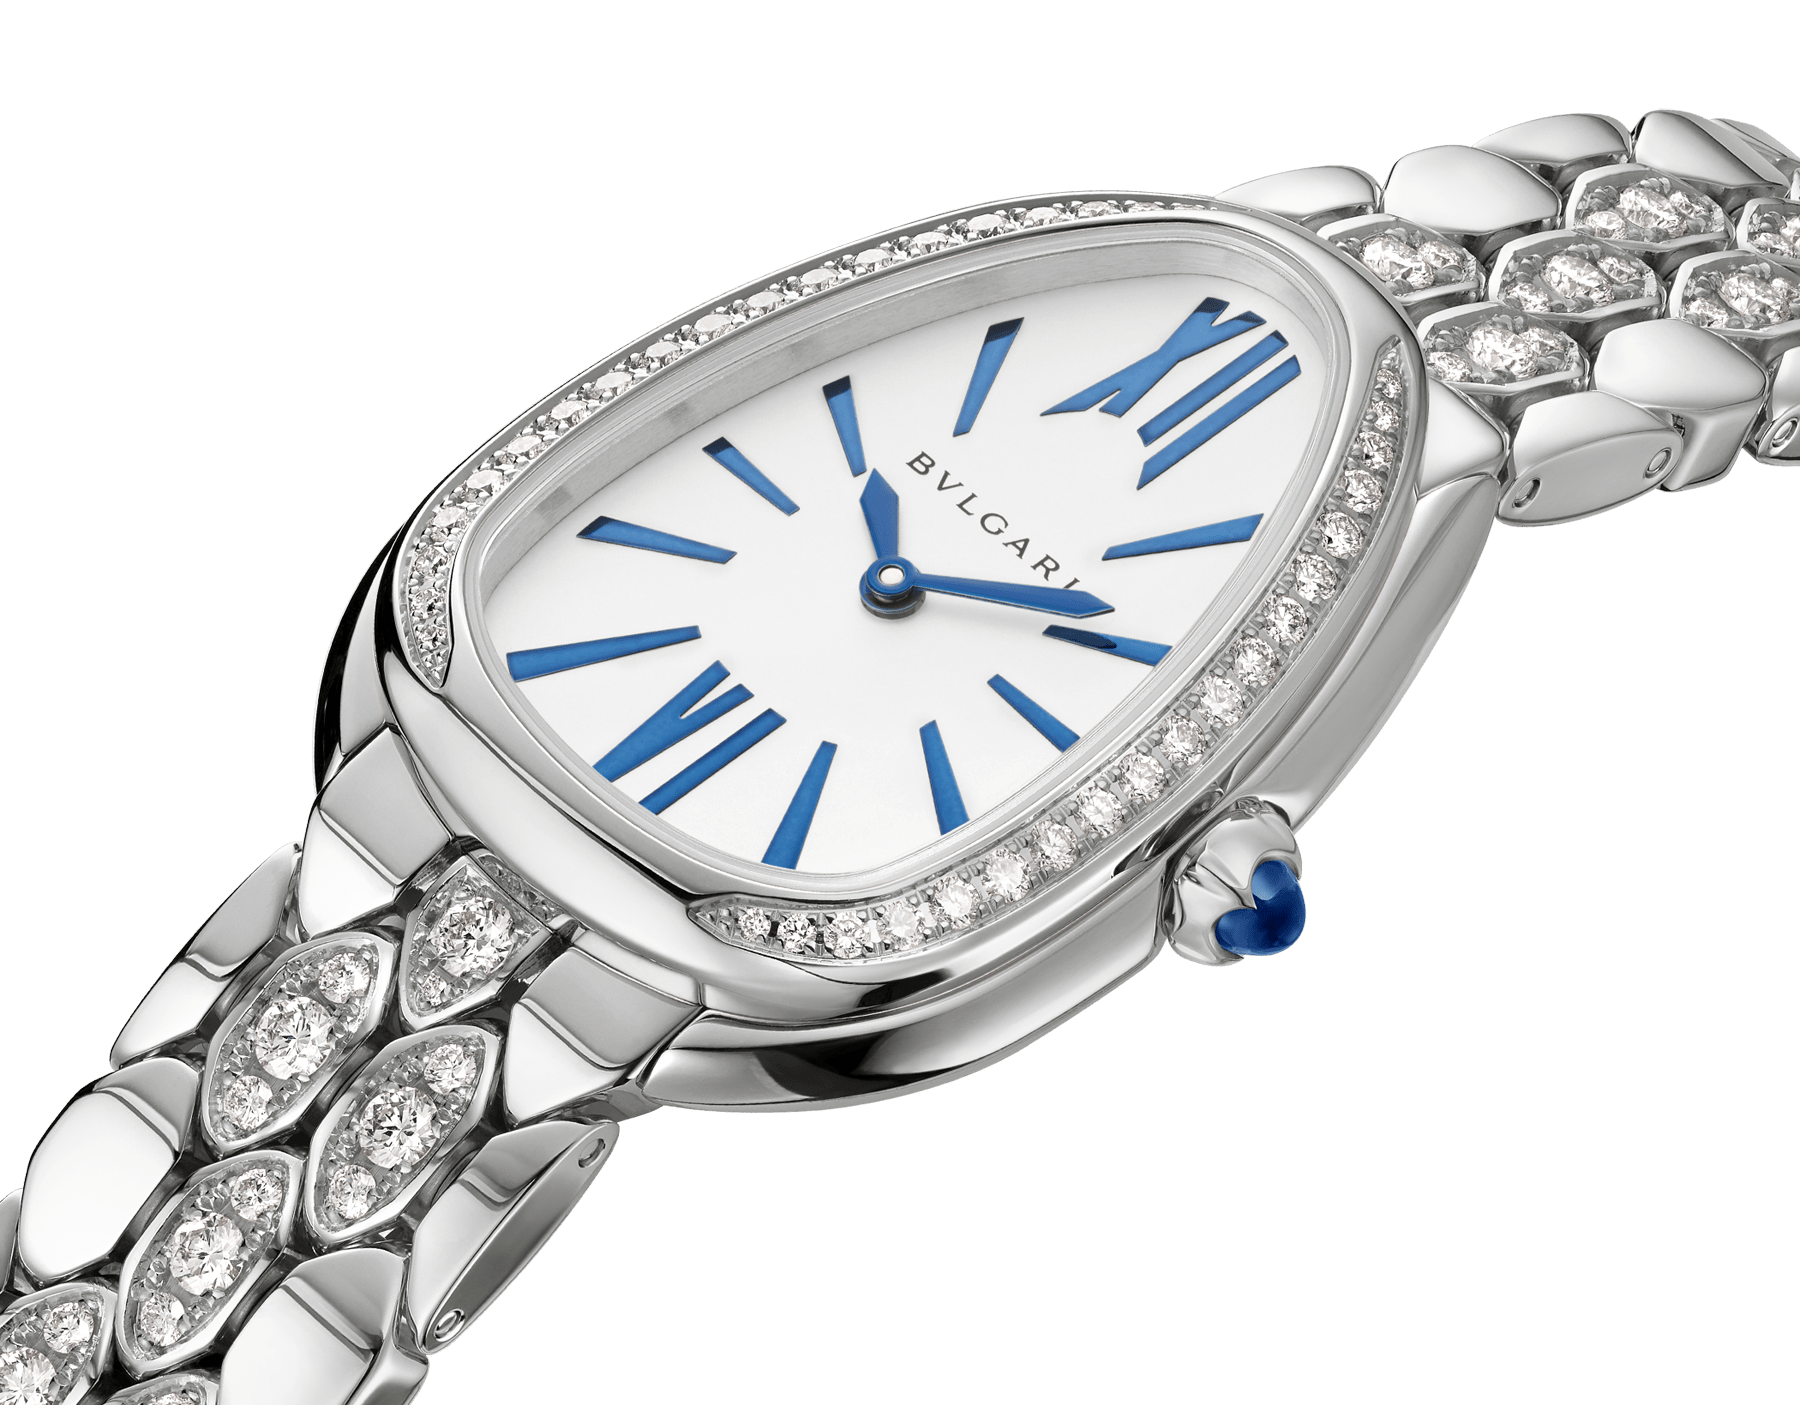 Serpenti Seduttori watch with 18 kt white gold case and bracelet both set with diamonds, and silver opaline dial 103276 image 2